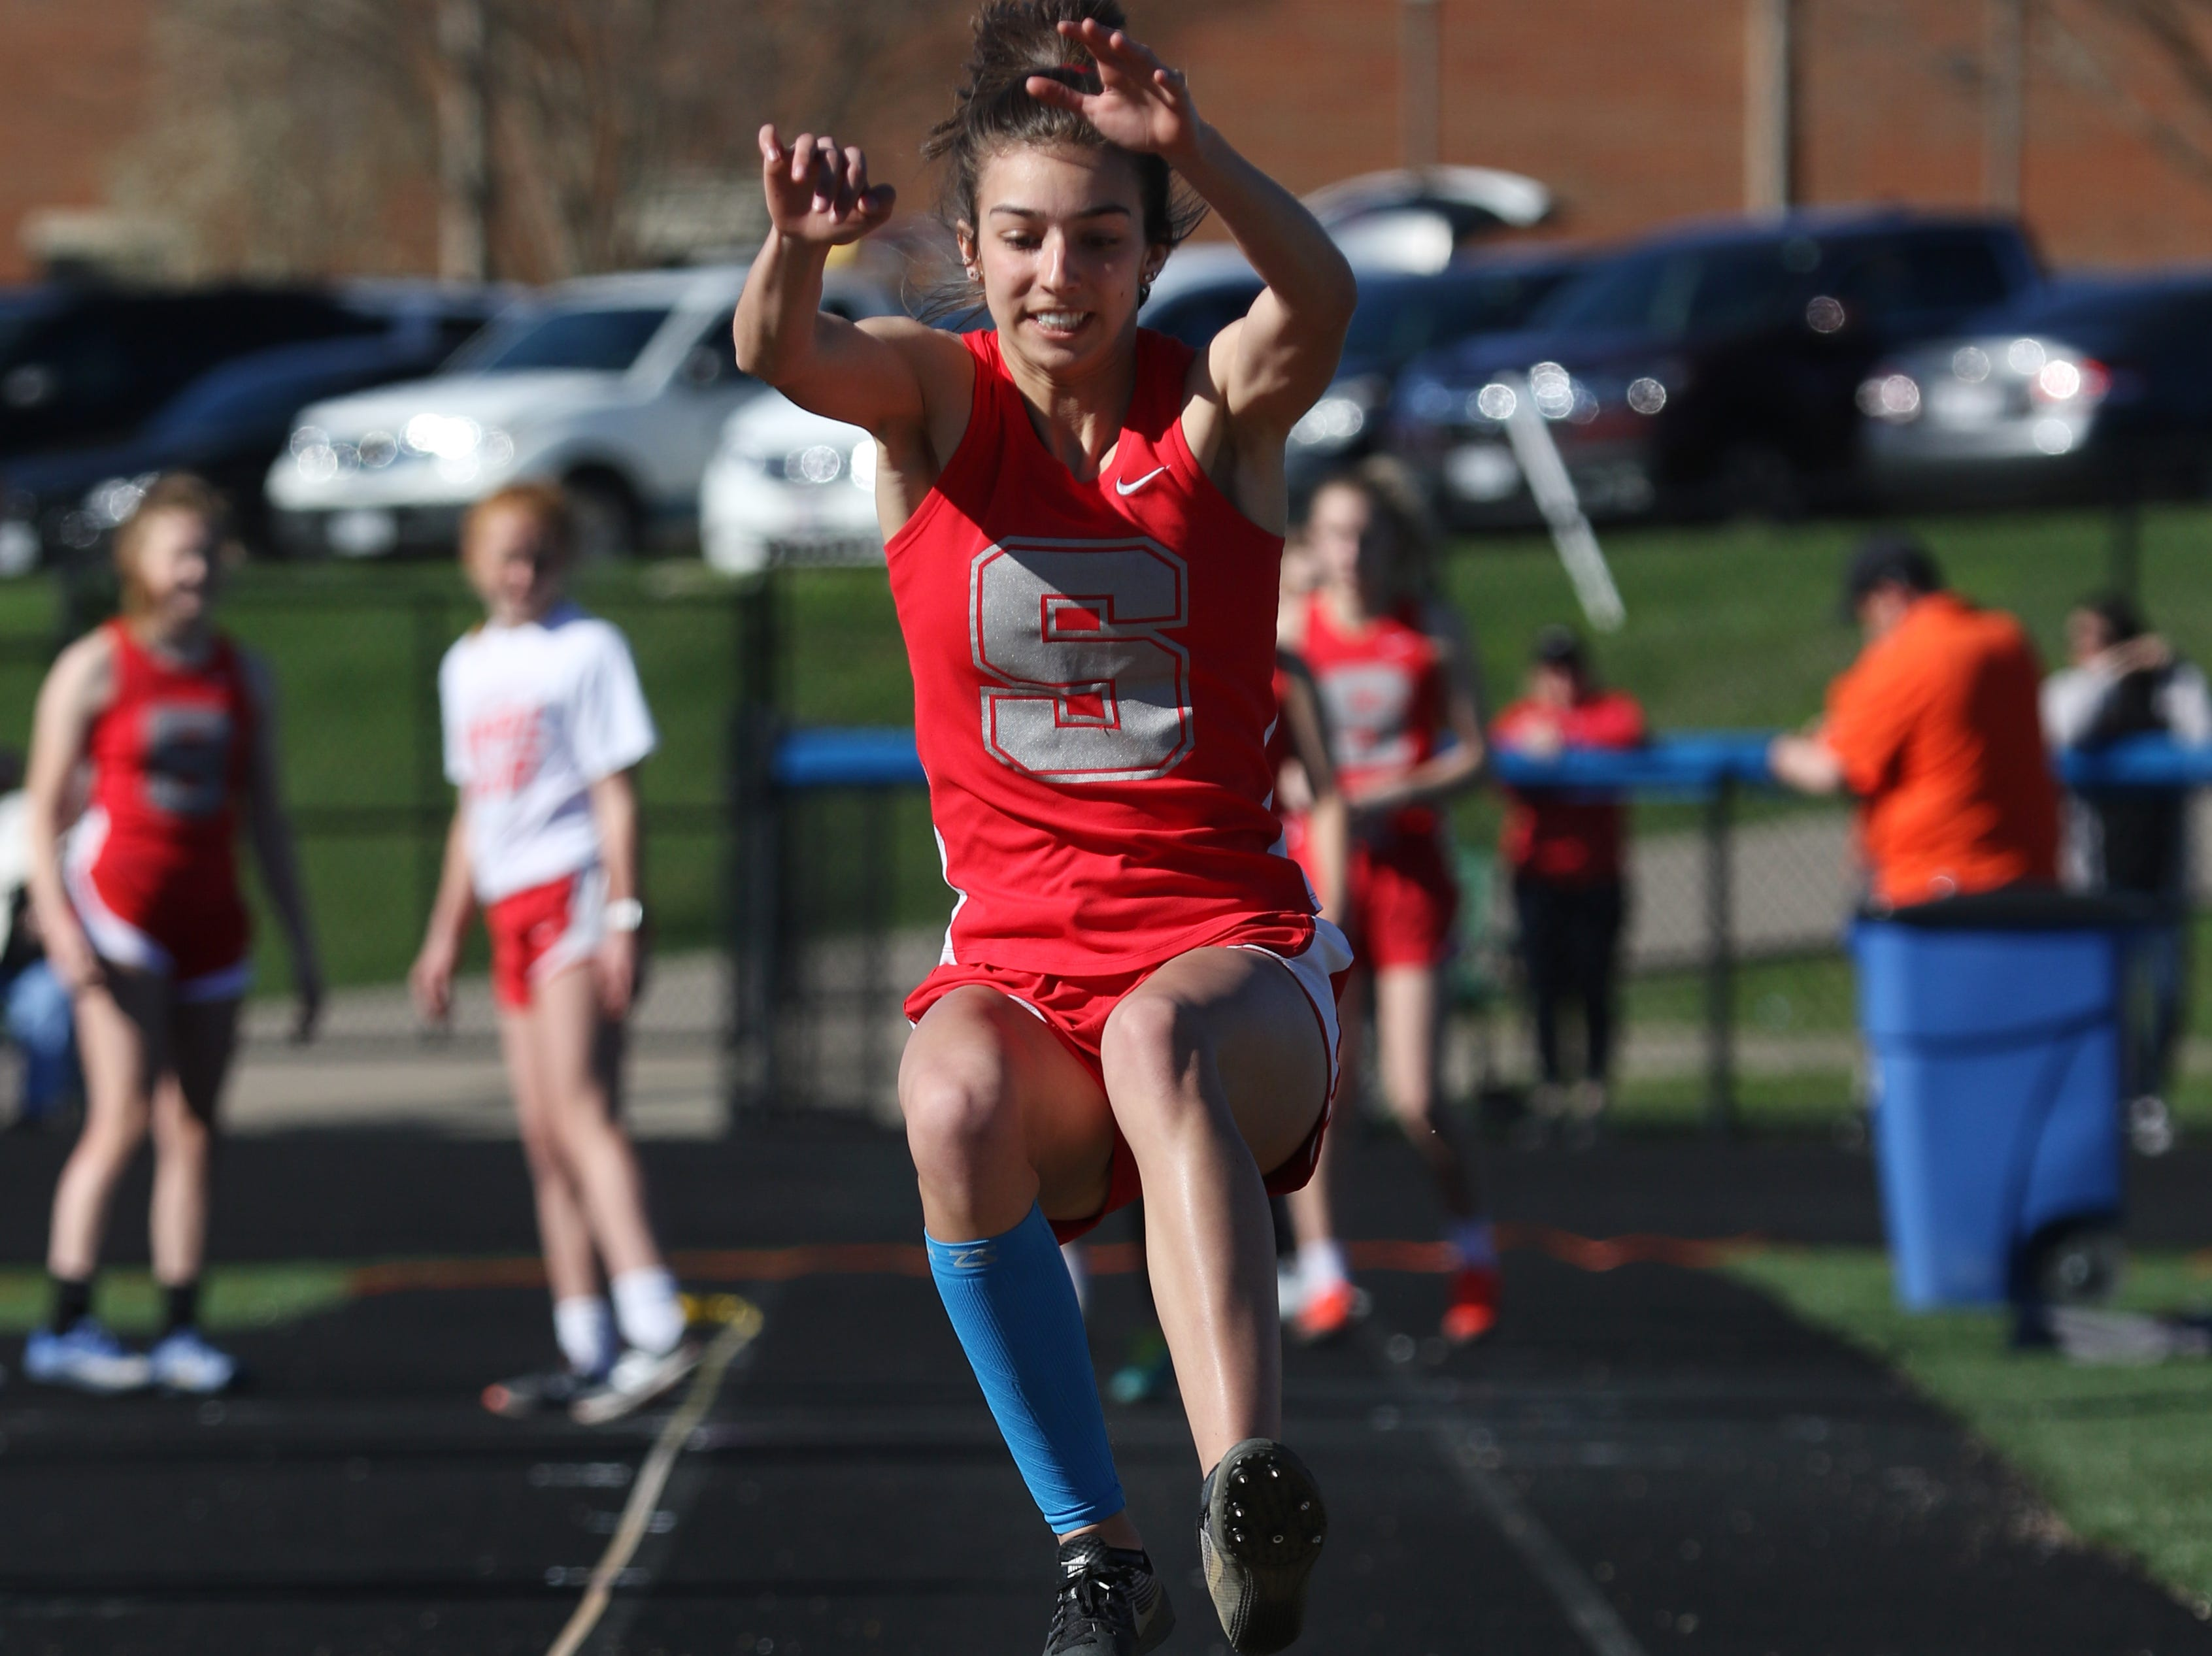 A Sheridan jumper competes in the long jump during Tuesday's tri-meet between Sheridan, New Lexington and host Maysville.